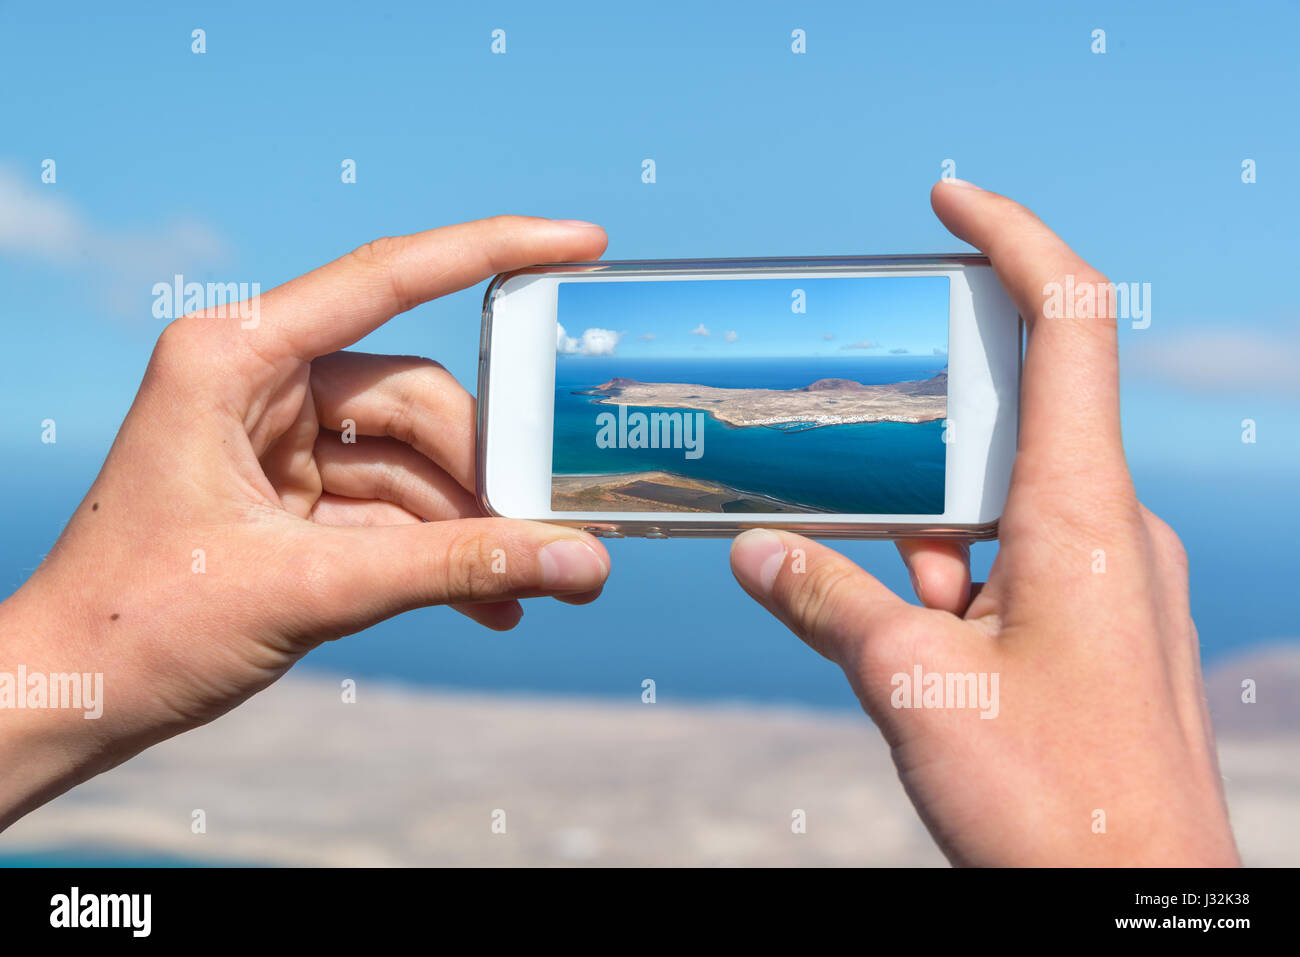 Close up on hands holding a smartphone to take pictures, in Lanzarote, Spain - Stock Image